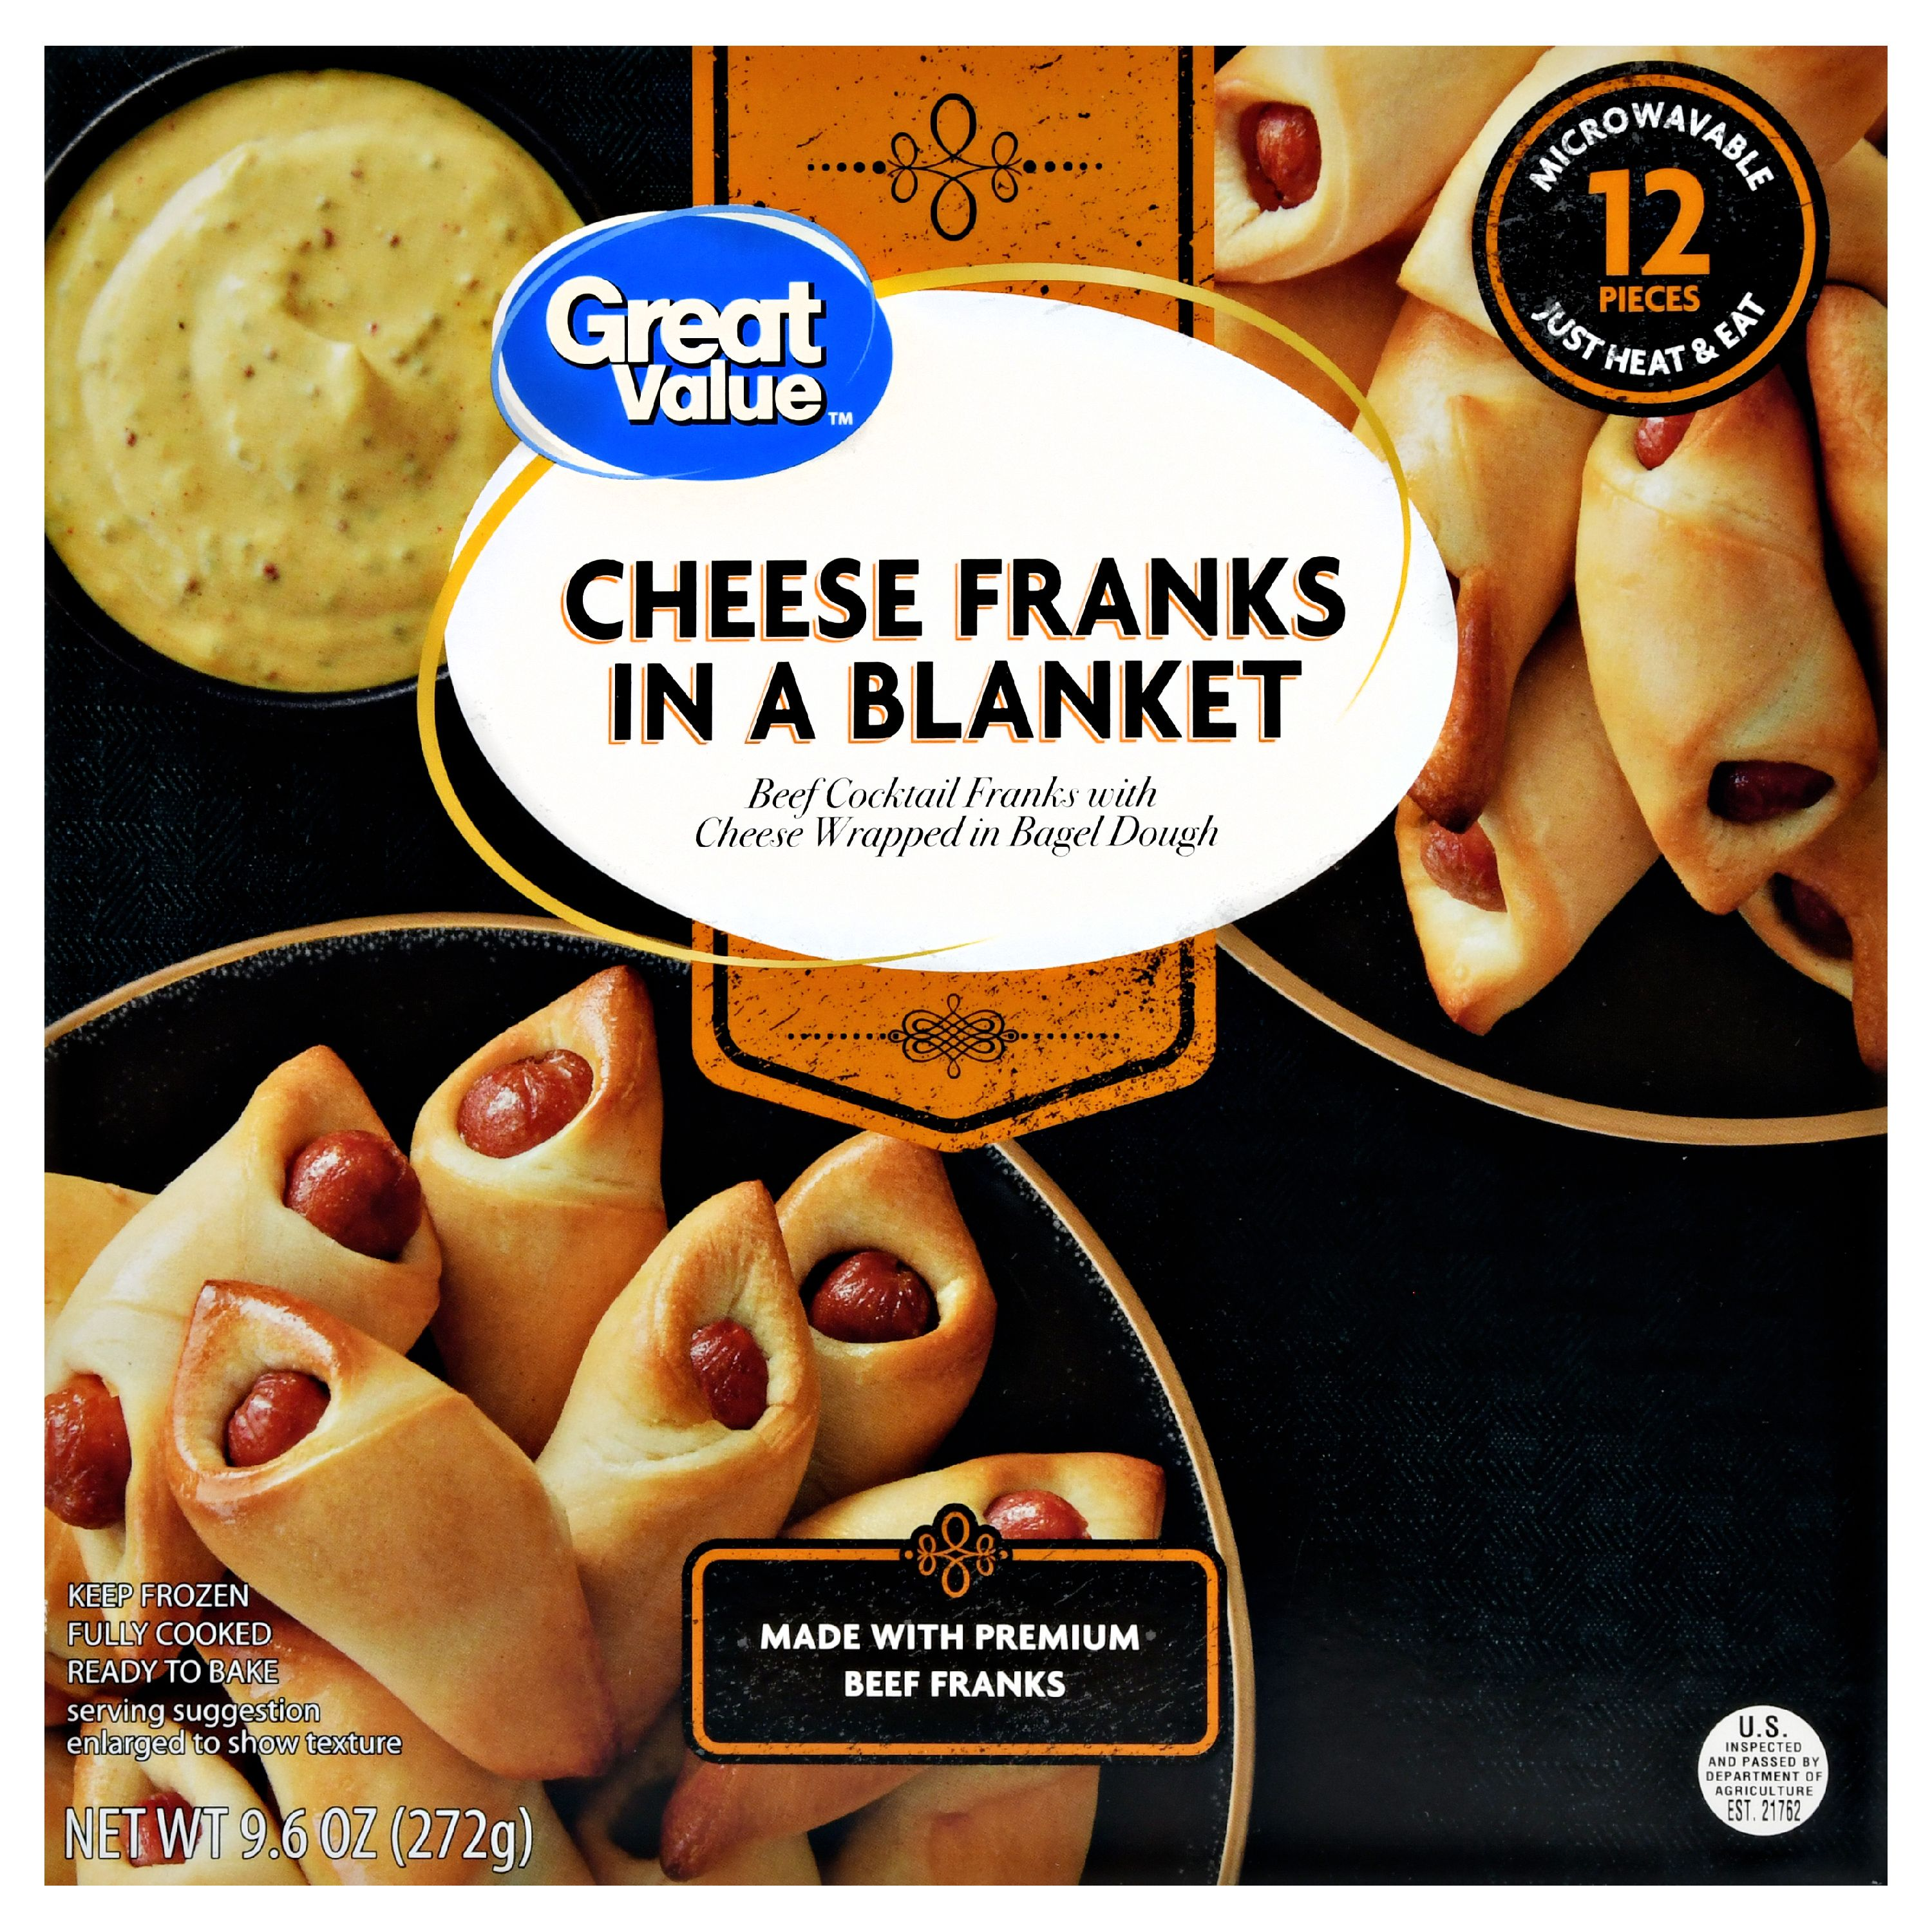 Great Value Frozen Cheese Franks in a Blanket, 12 Count